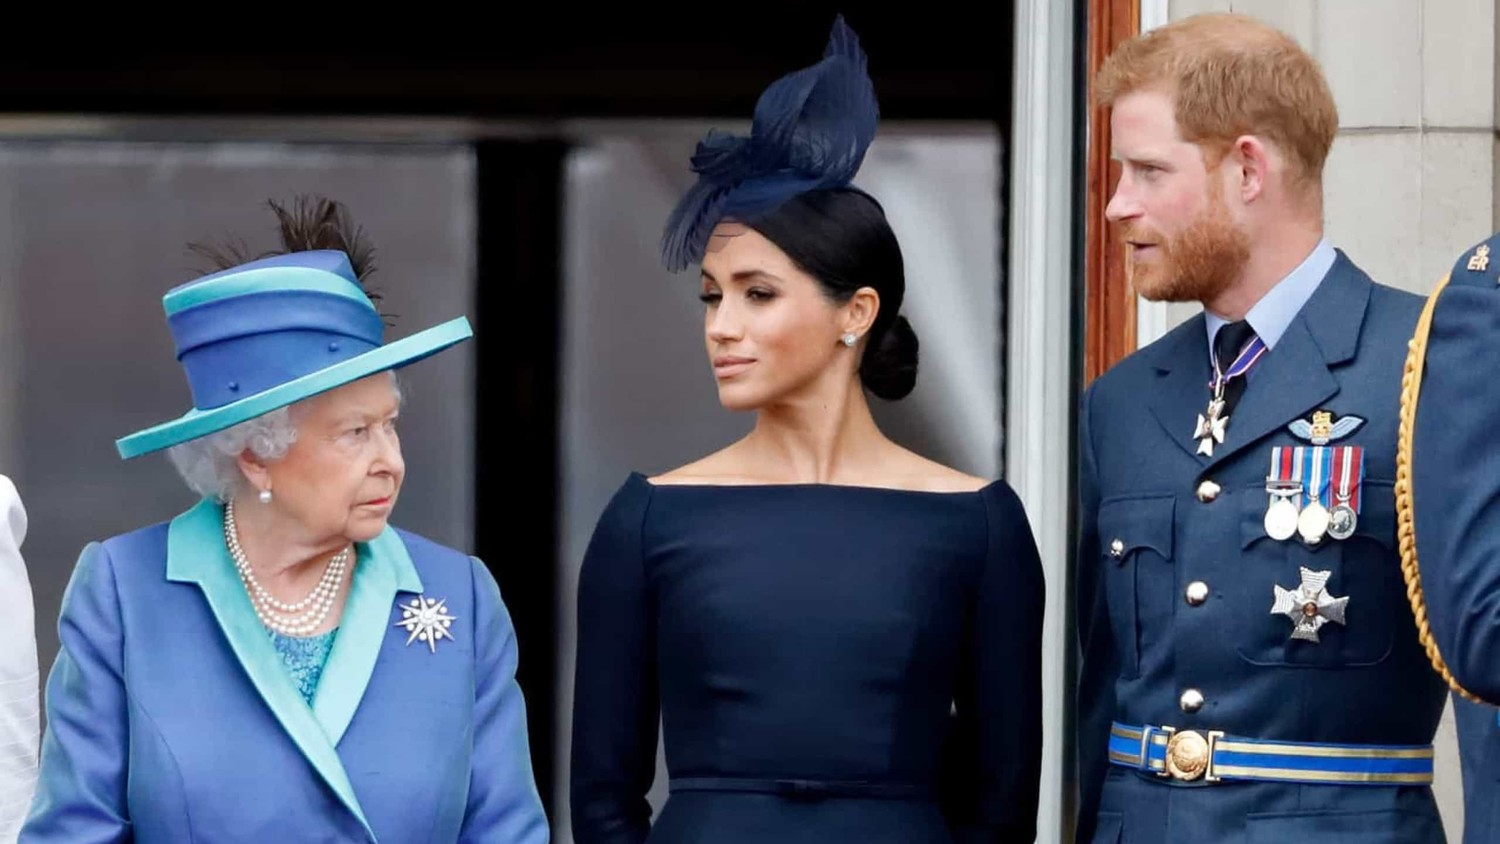 The reason for the departure of Meghan Markle and Prince Harry from the royal family